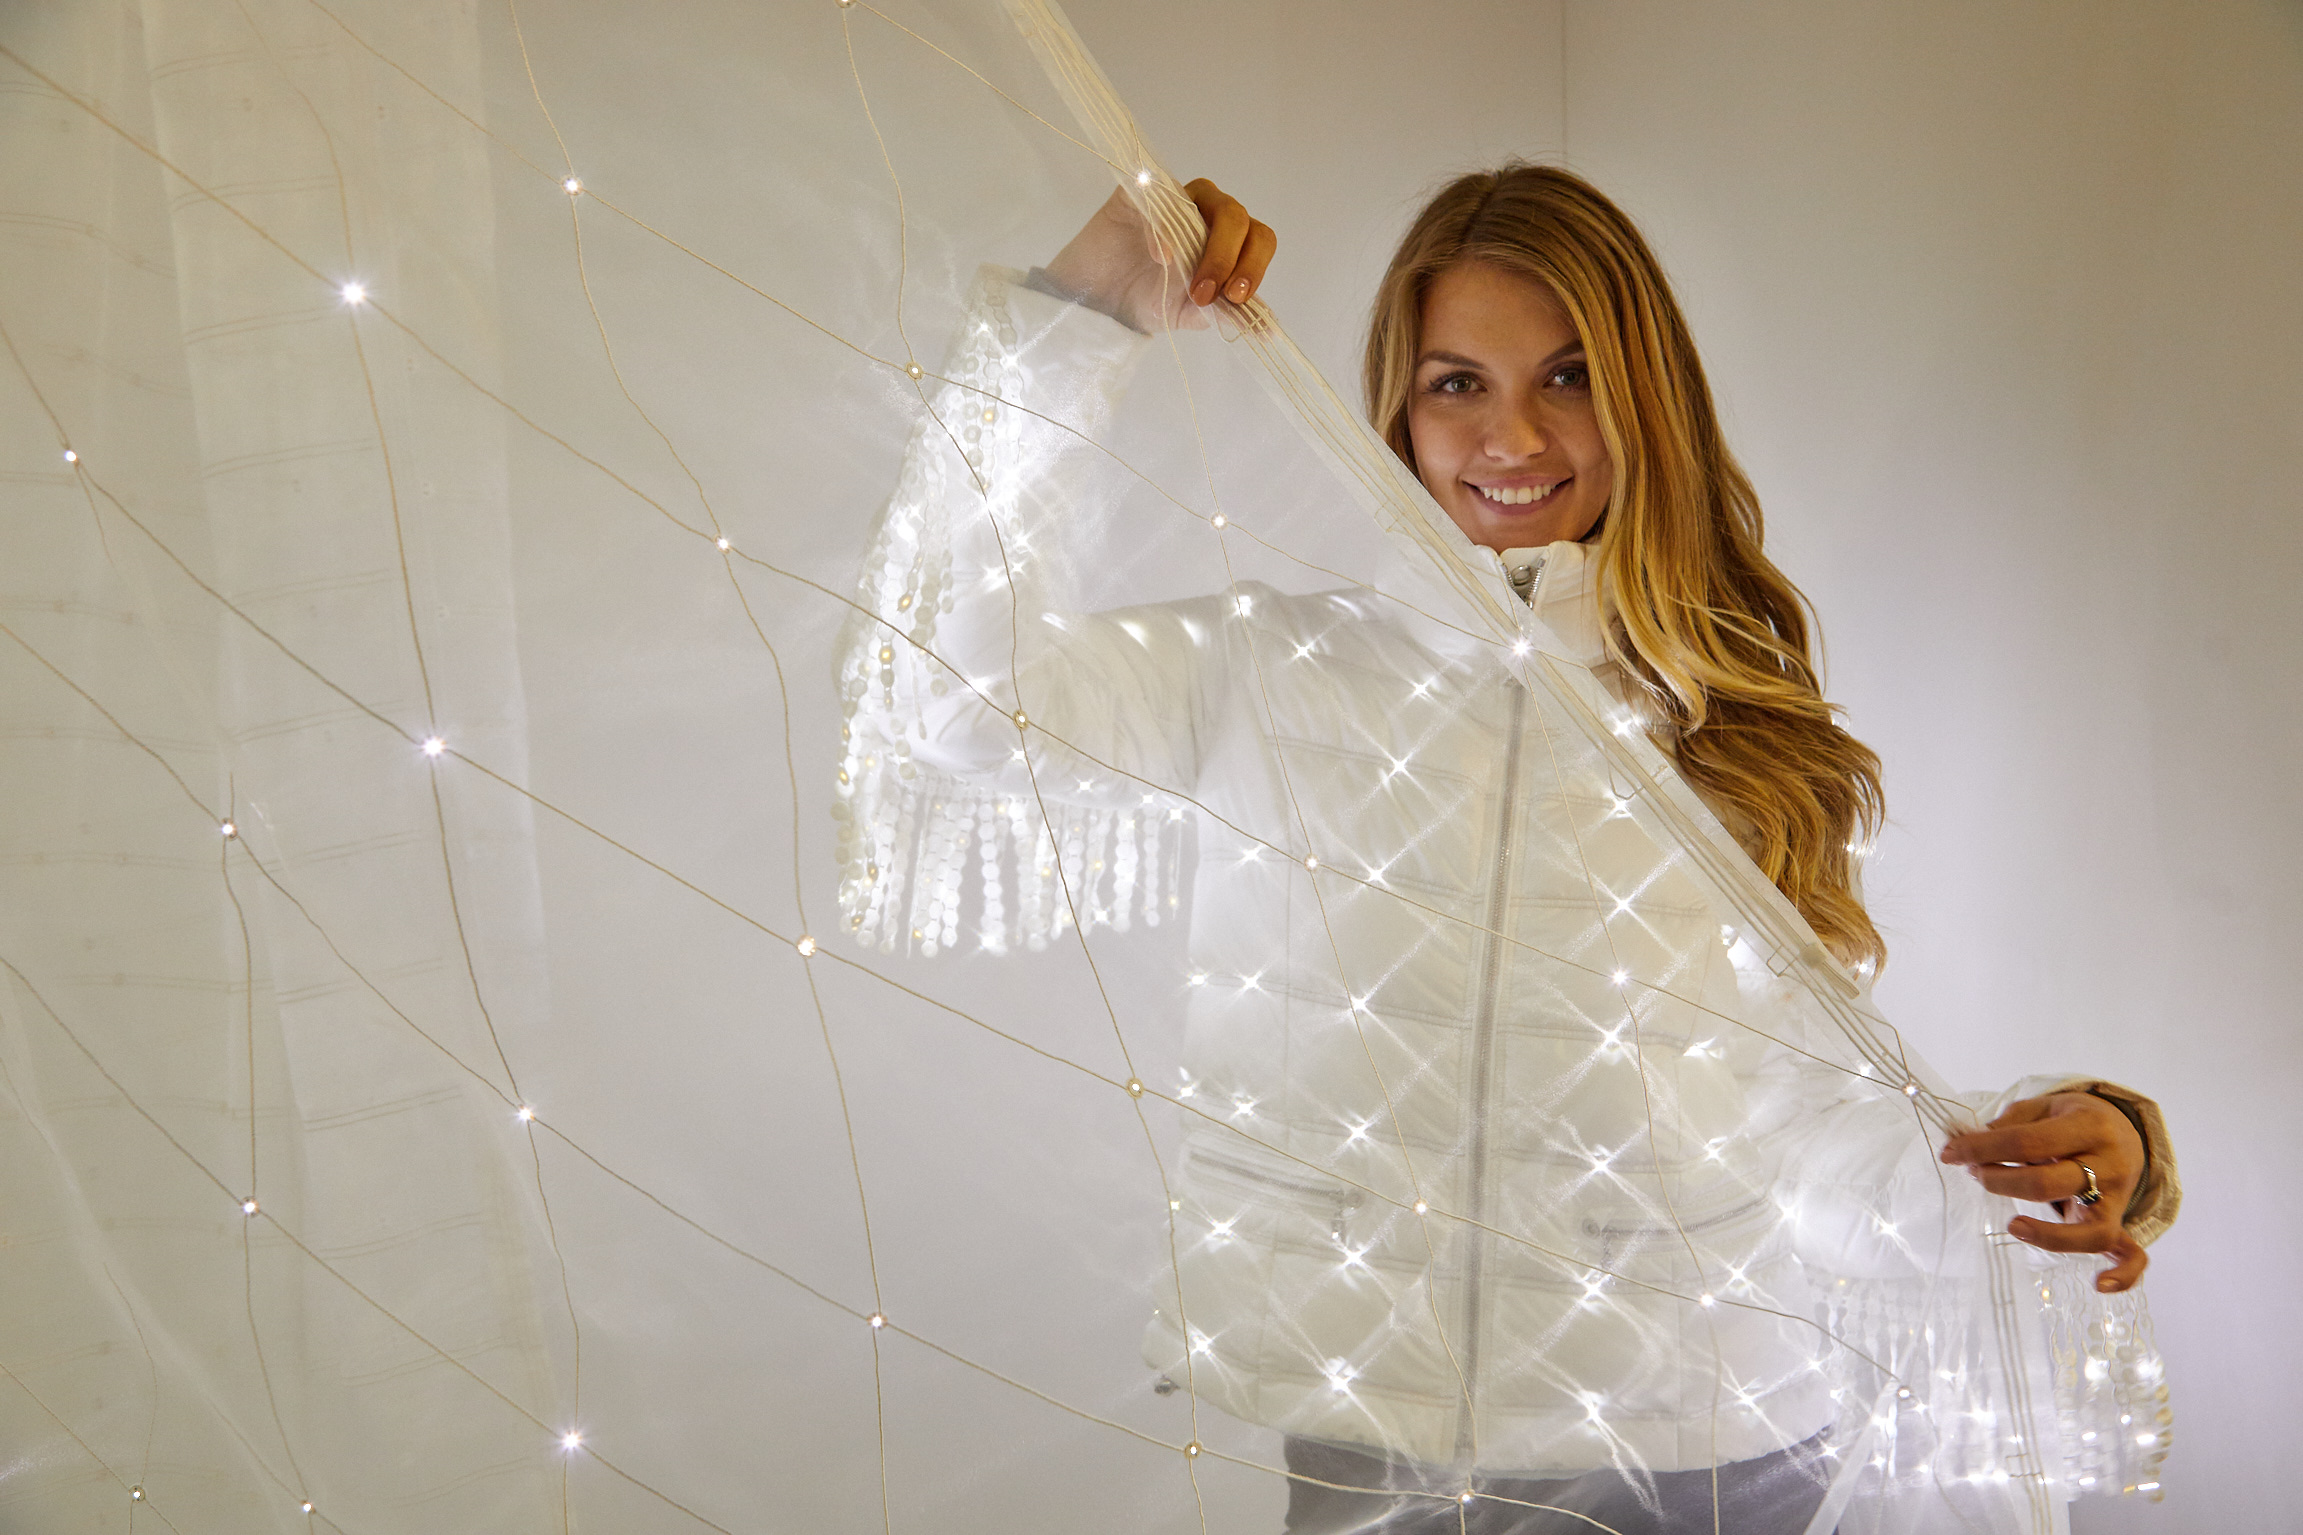 Après-Ski Jacket and LED-Curtain: E-Broidery with LED-Textiles: the E-Boidery Technology allows the integration of active lighting into fabrics without compromising washability and drapability